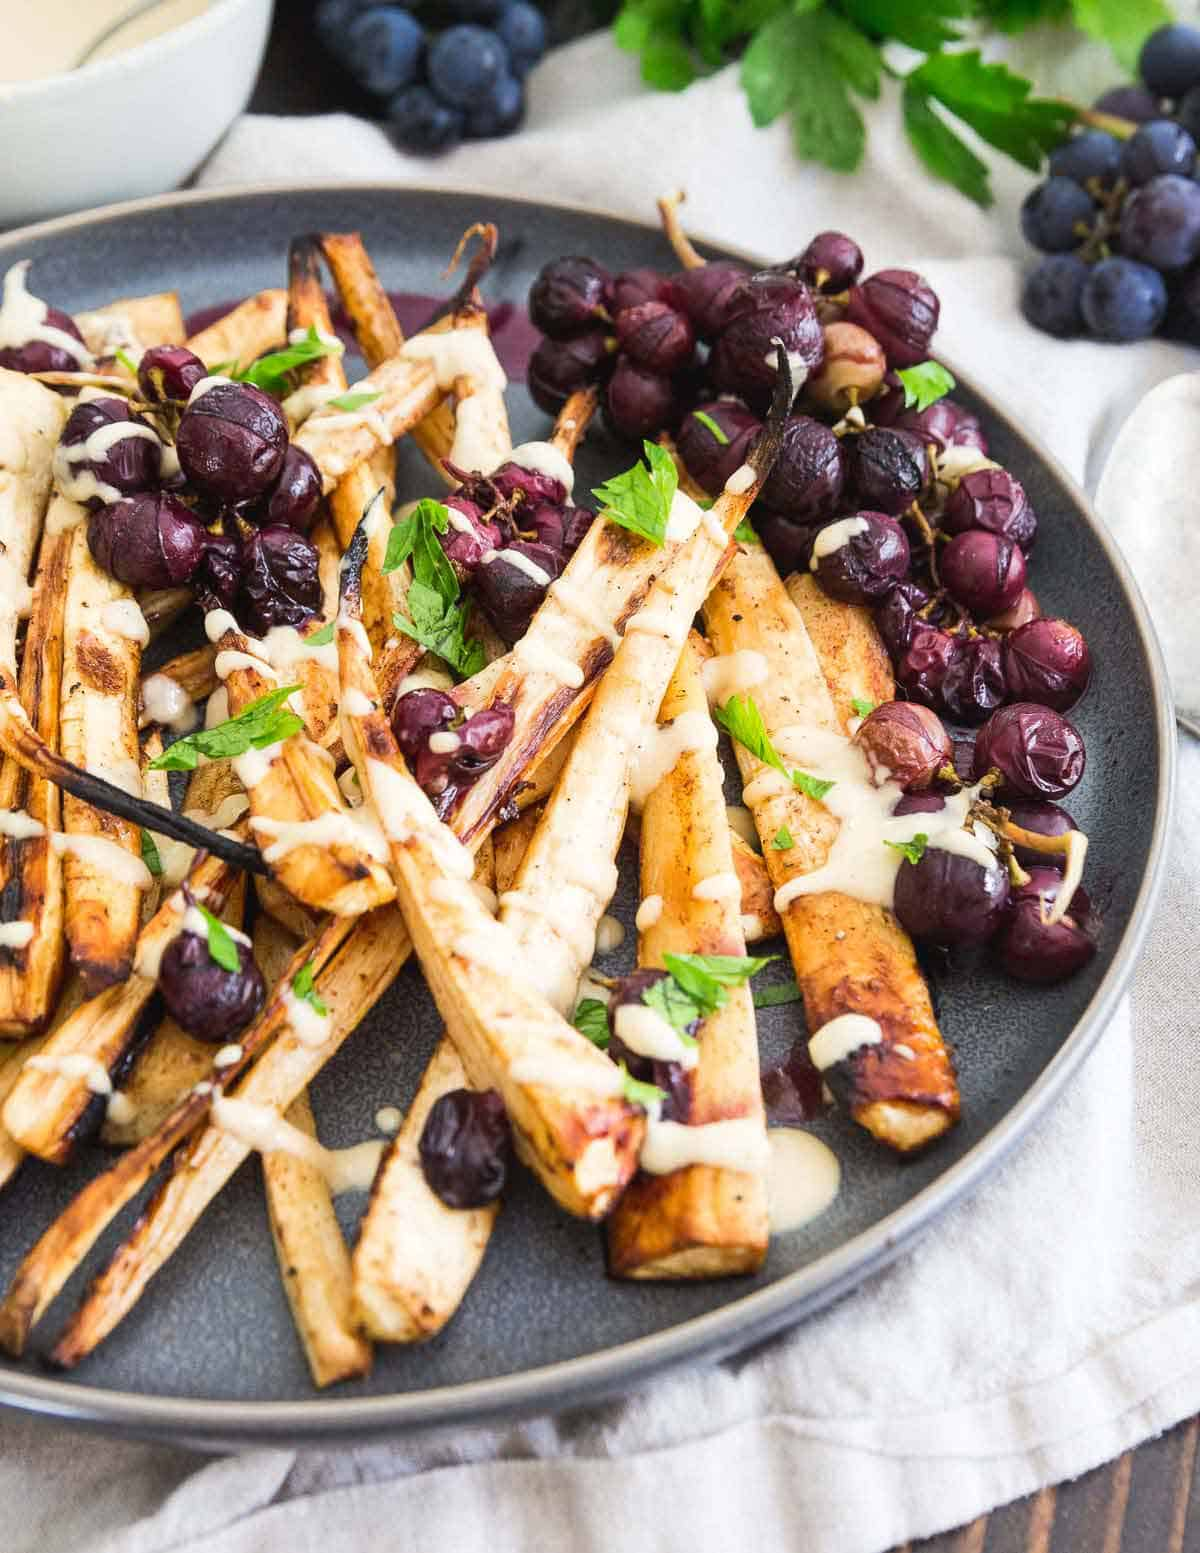 Roasting parsnips and concord grapes with cinnamon and brown sugar totally transform this side dish into something special and unique. Try it for your holiday dinner!